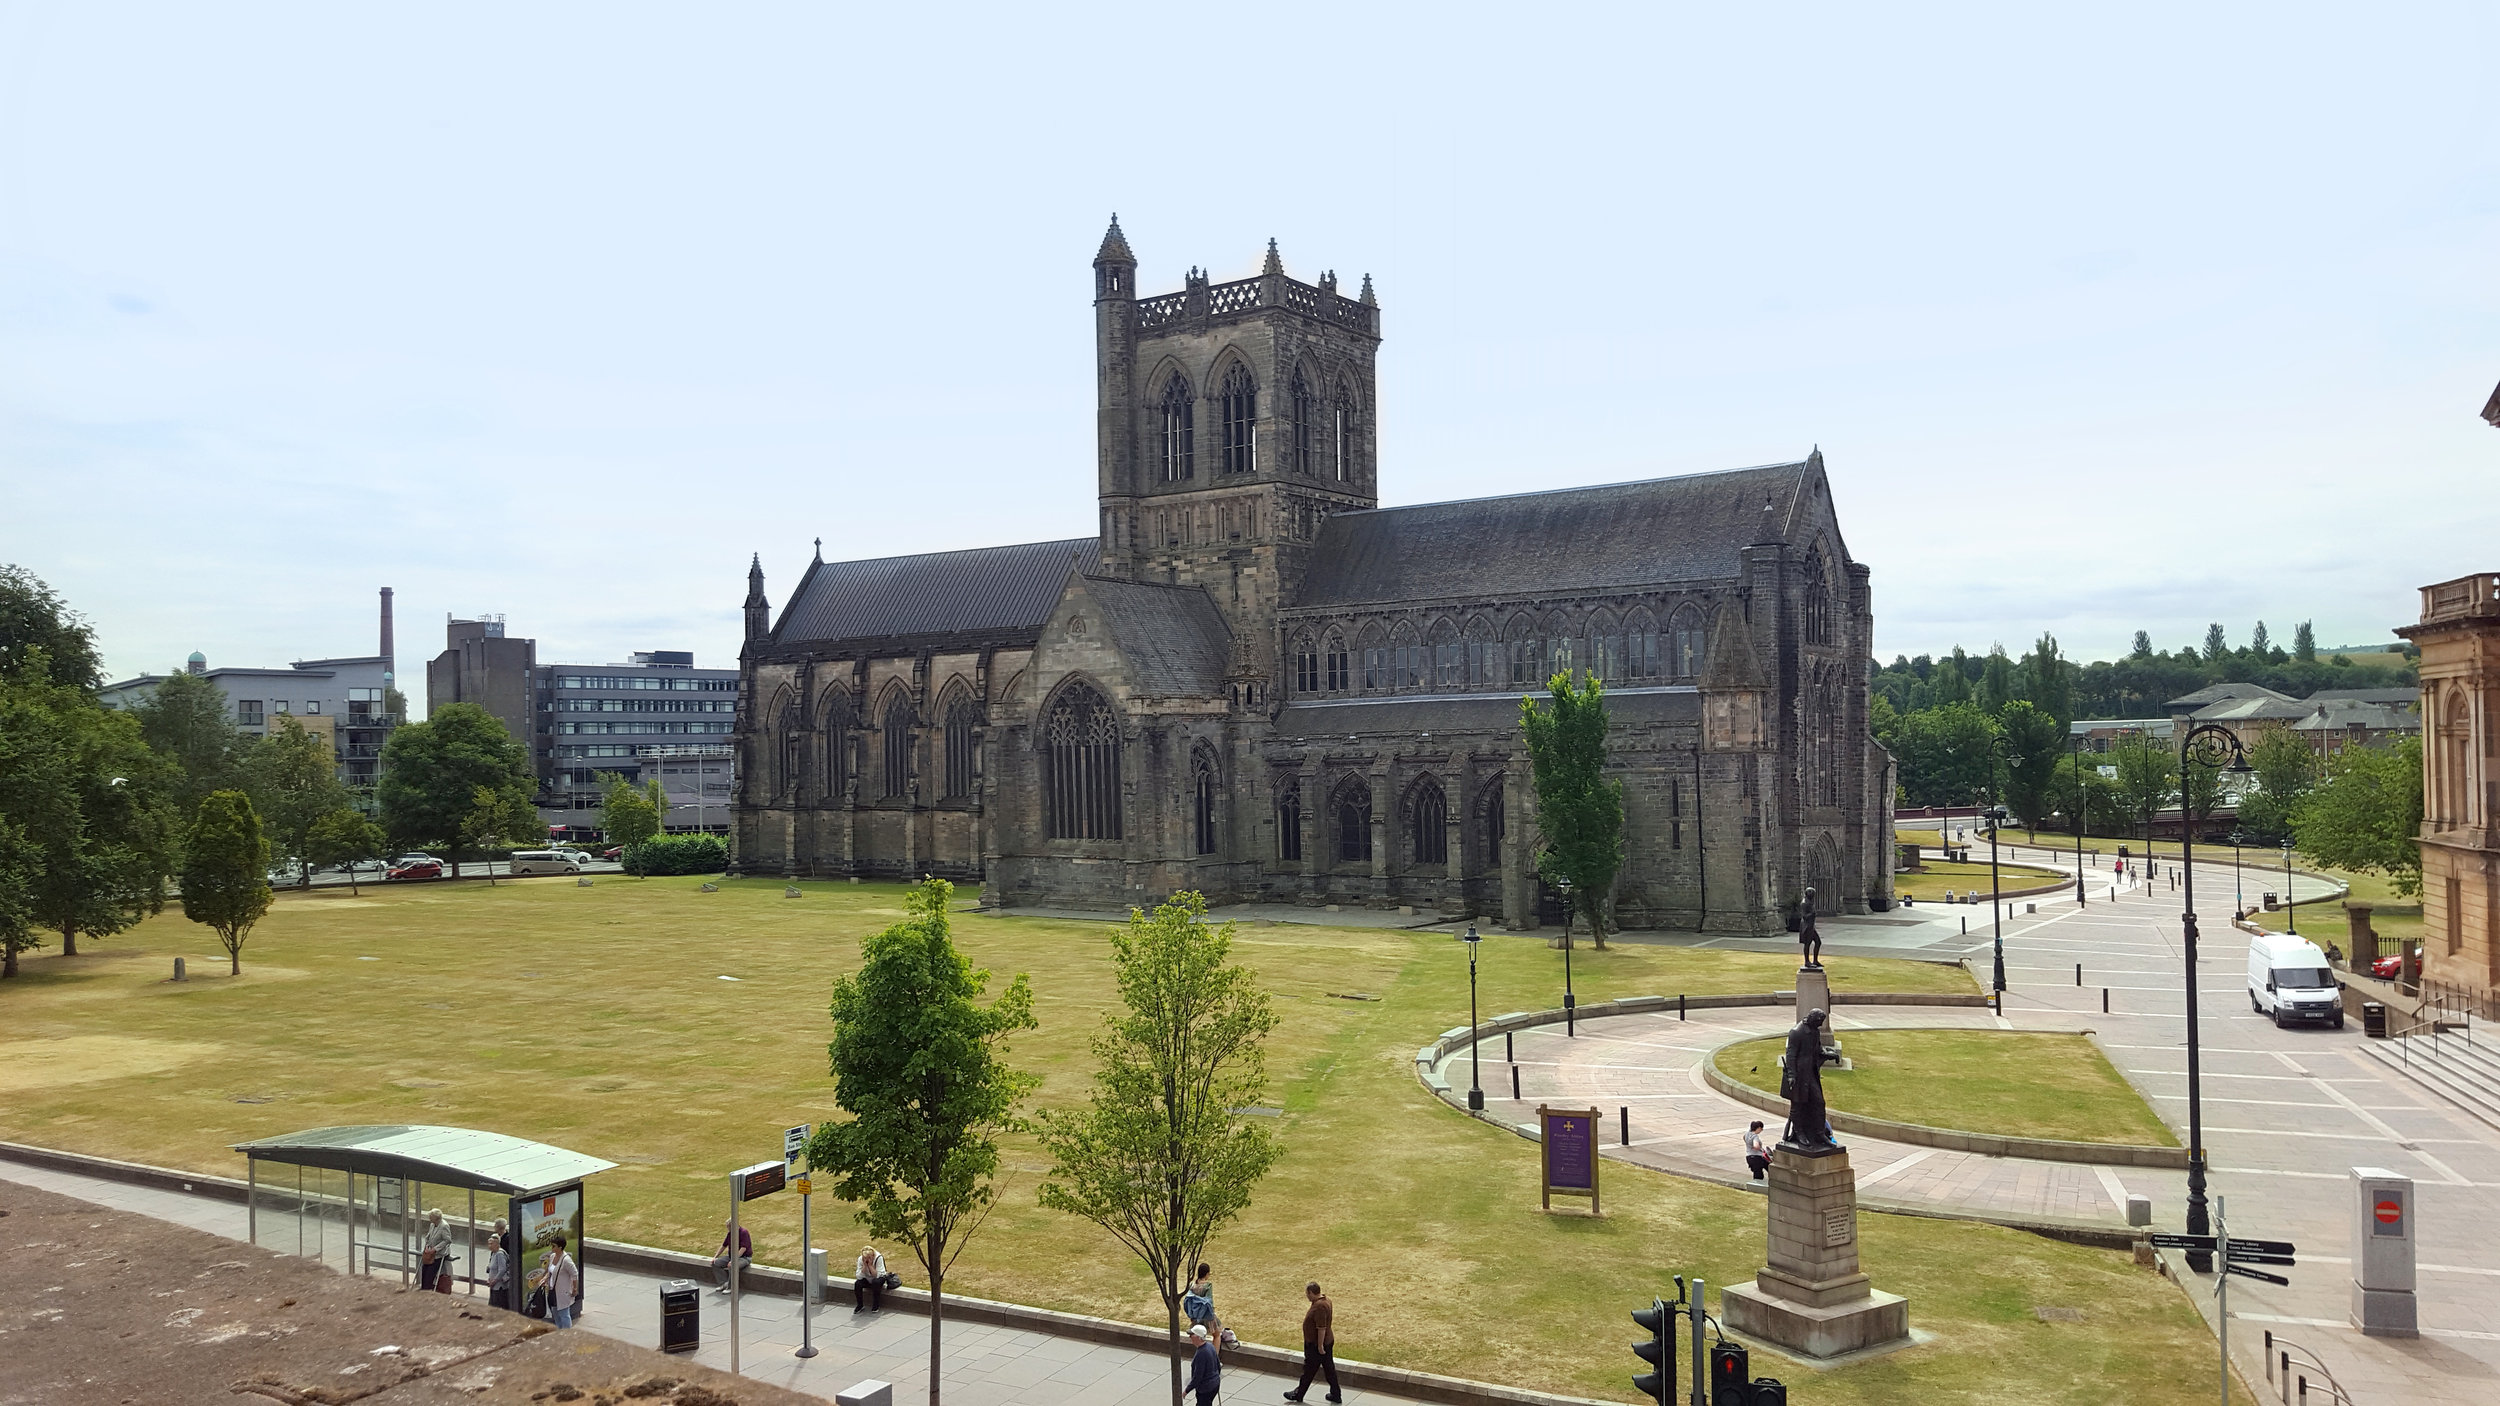 The Paisley Abbey in our town.